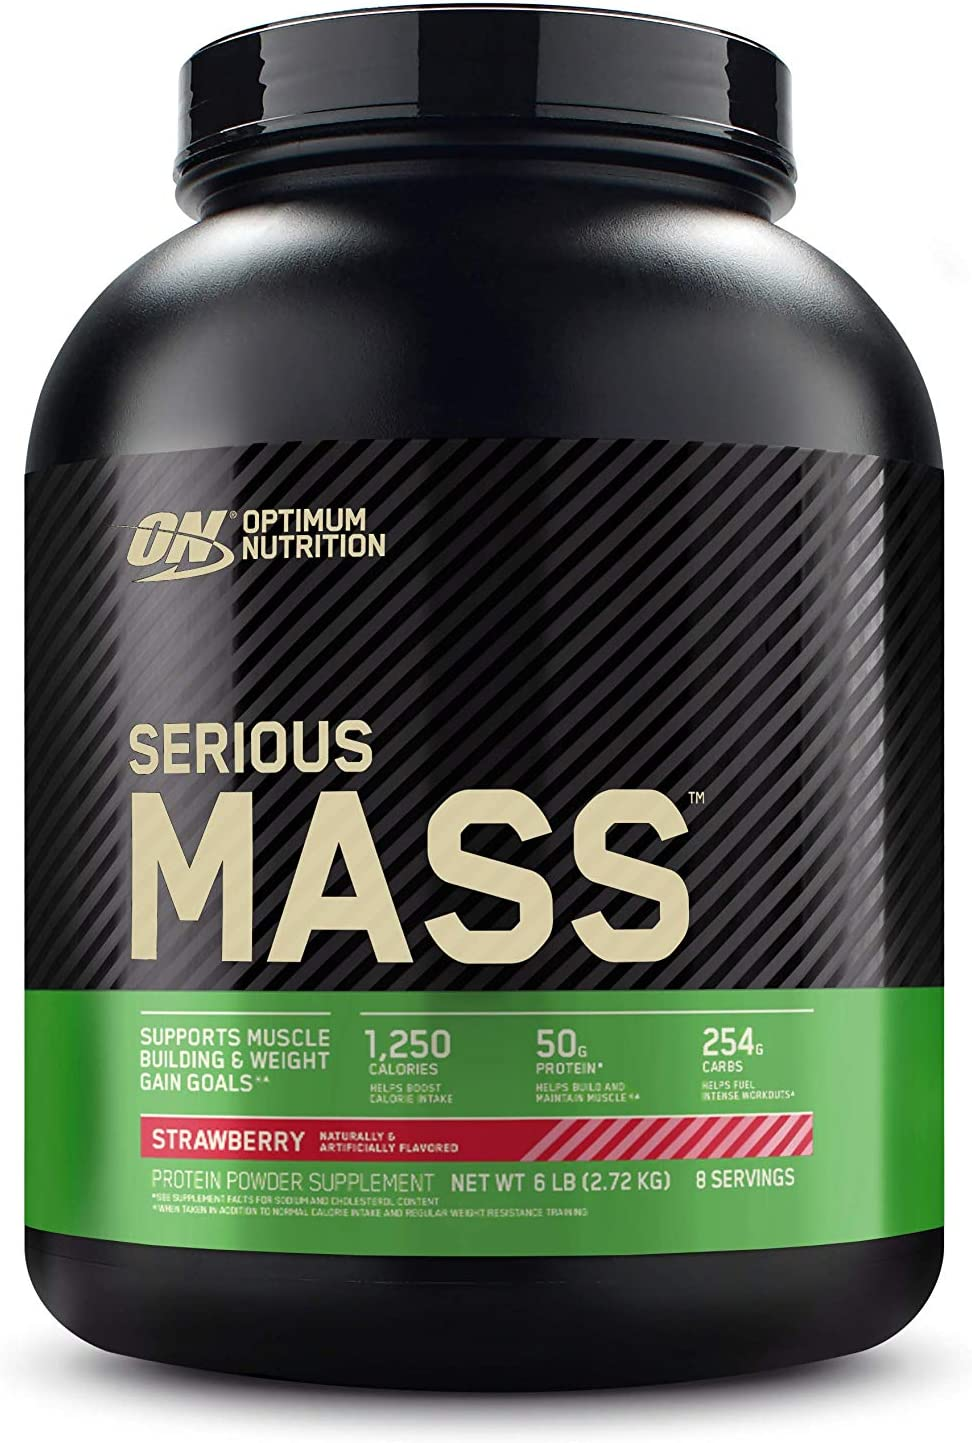 Optimum Nutrition Serious Mass Weight Gainer Protein Powder, Vitamin C, Zinc and Vitamin D for Immune Support, Strawberry, 6 Pound (Packaging May Vary)